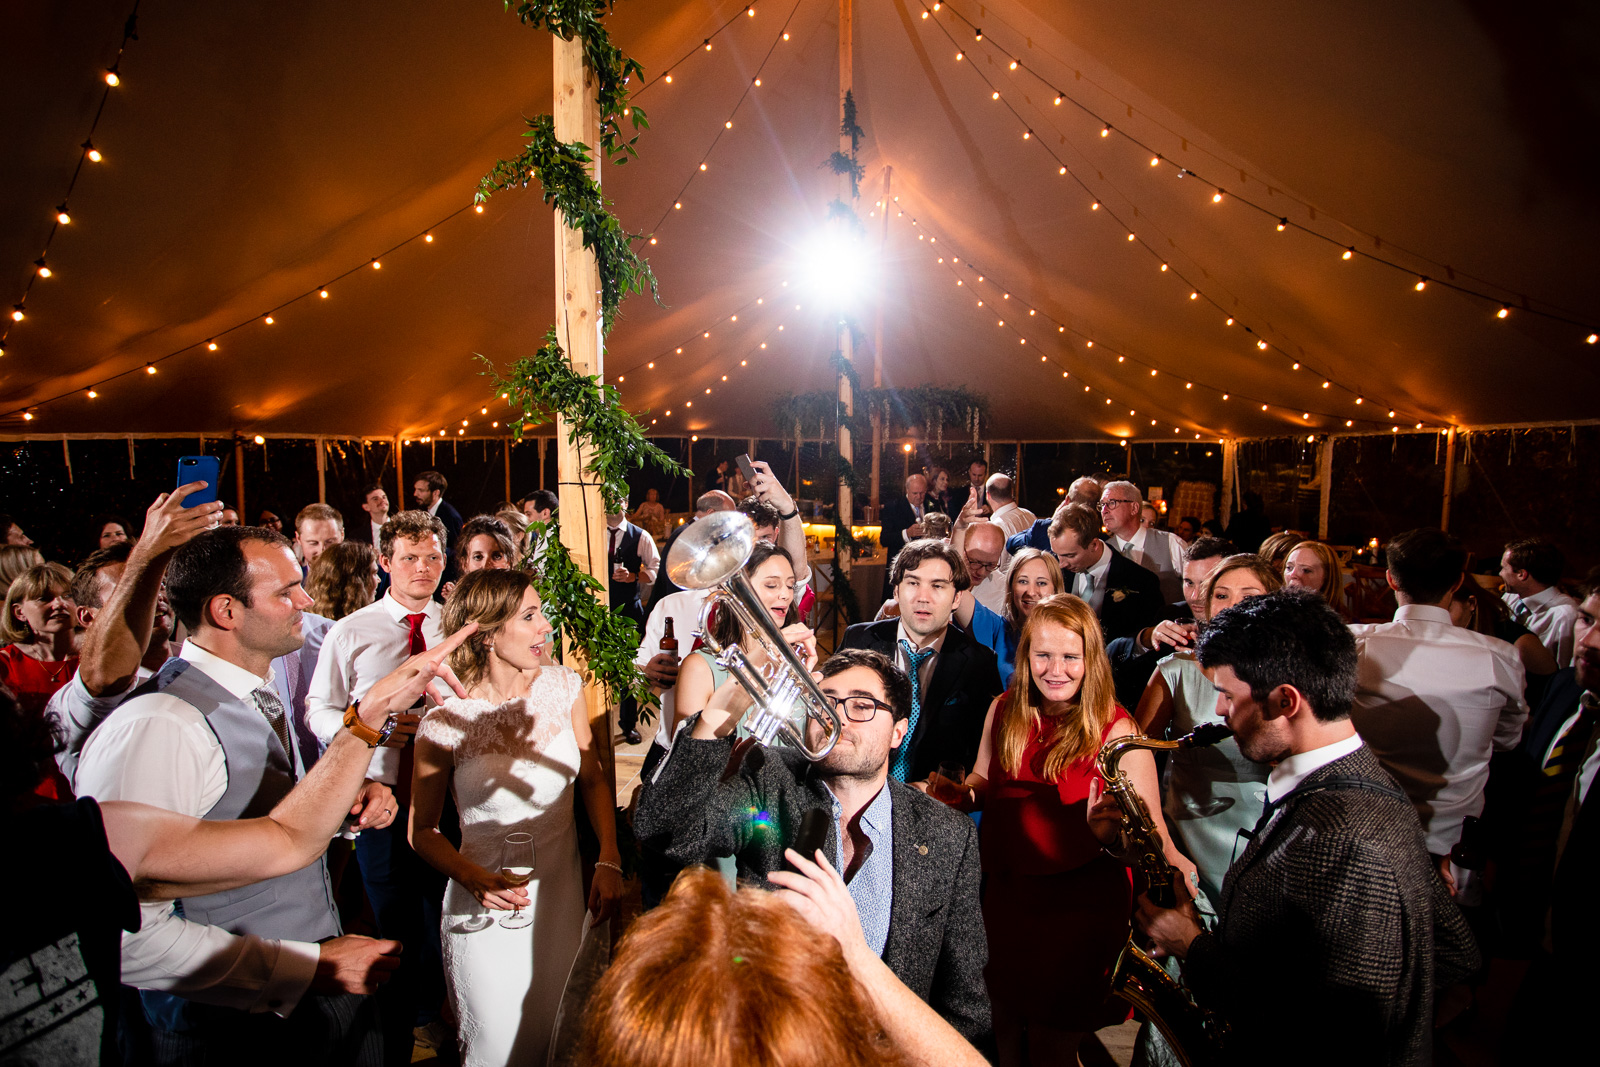 Emily & Ed's PapaKåta Sperry Tent wedding at Buckhurst Park captured by Tony Hart Photography: Wedding Entertainment